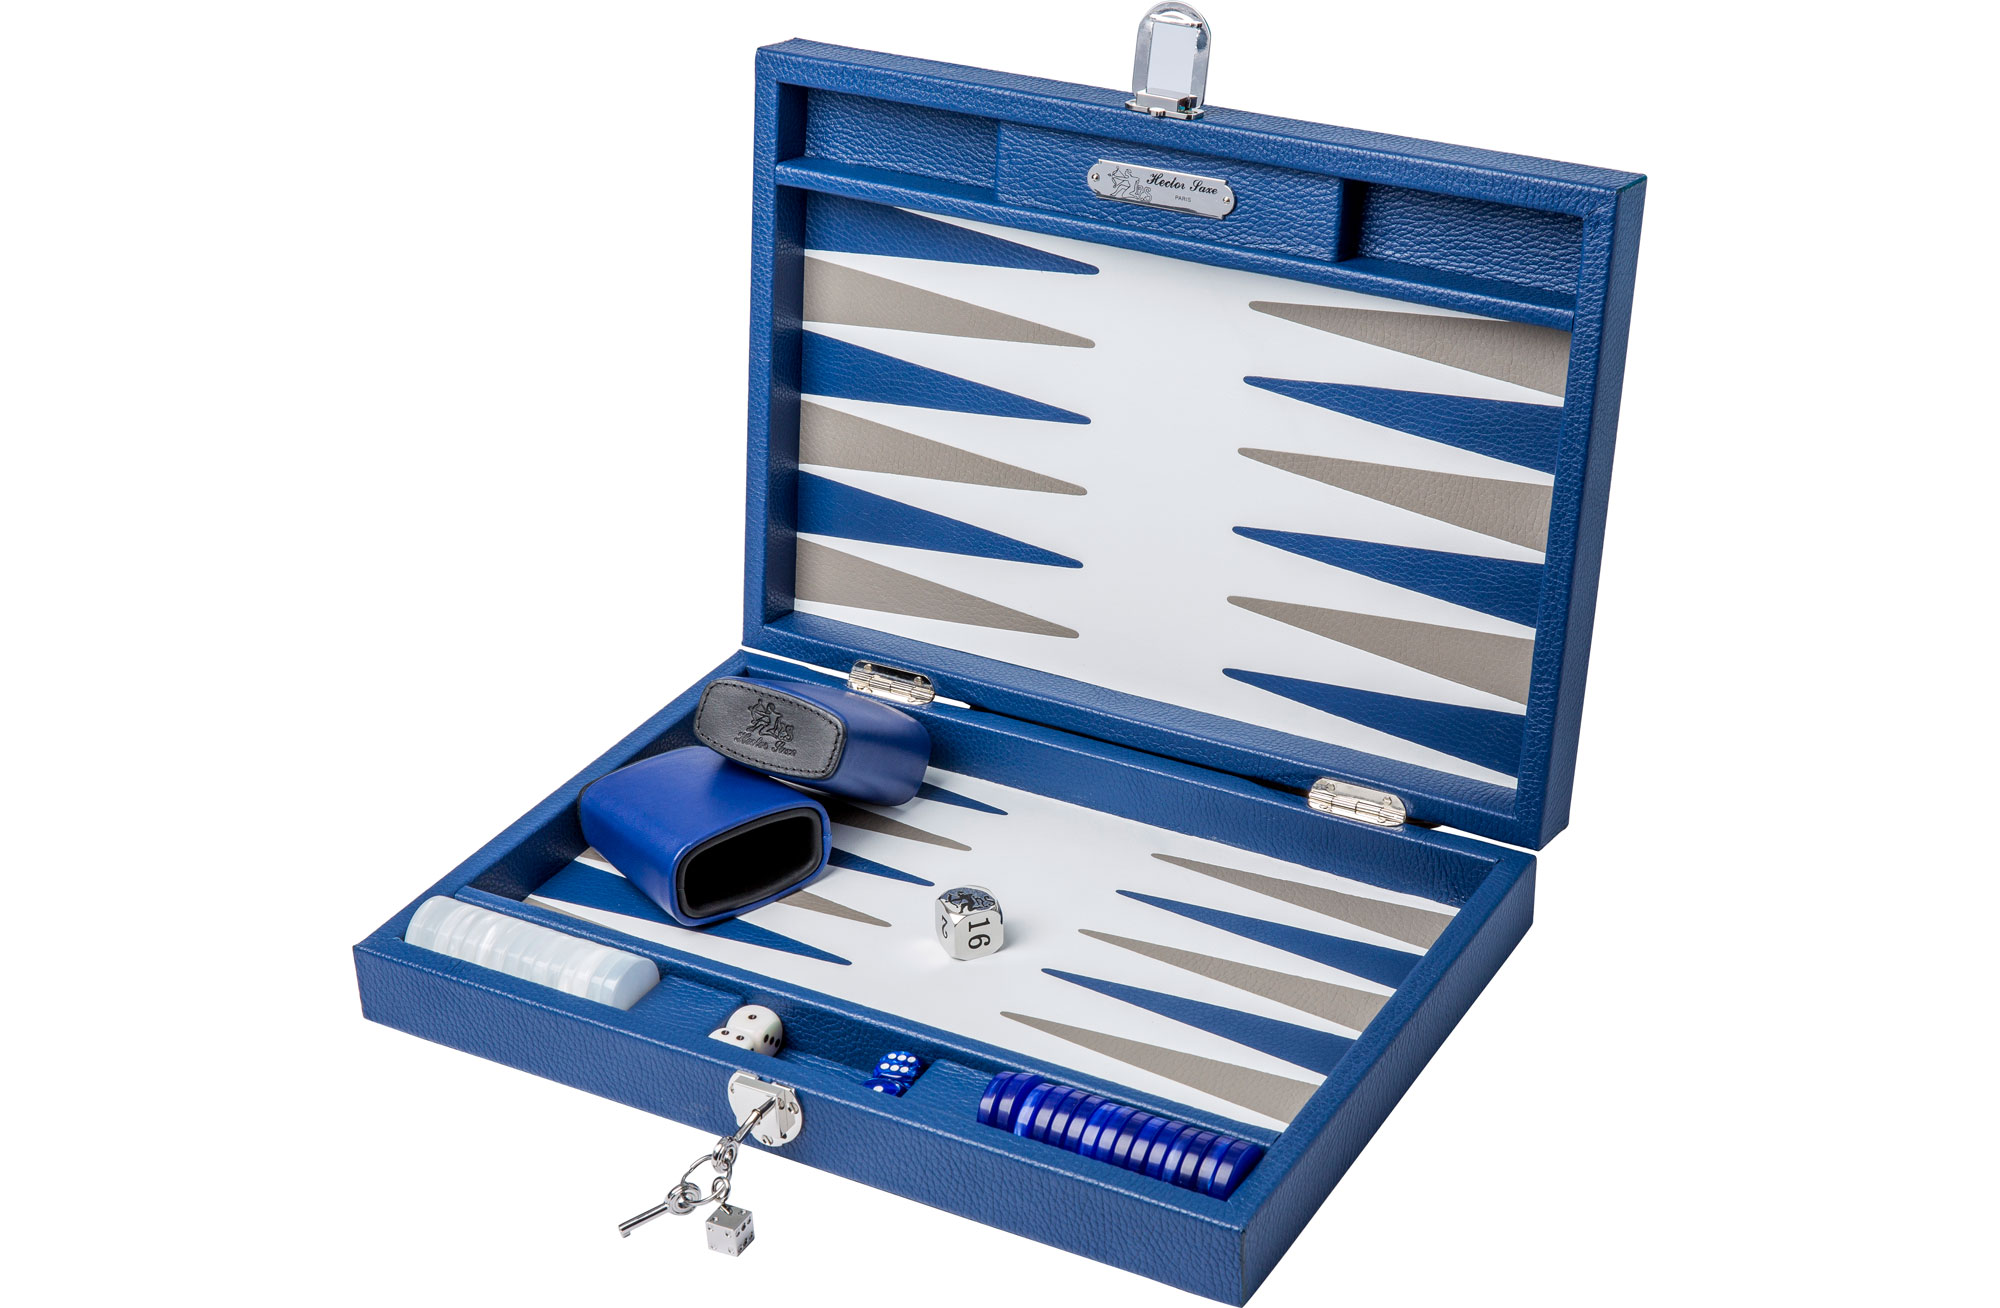 Backgammon Set by Hector Saxe